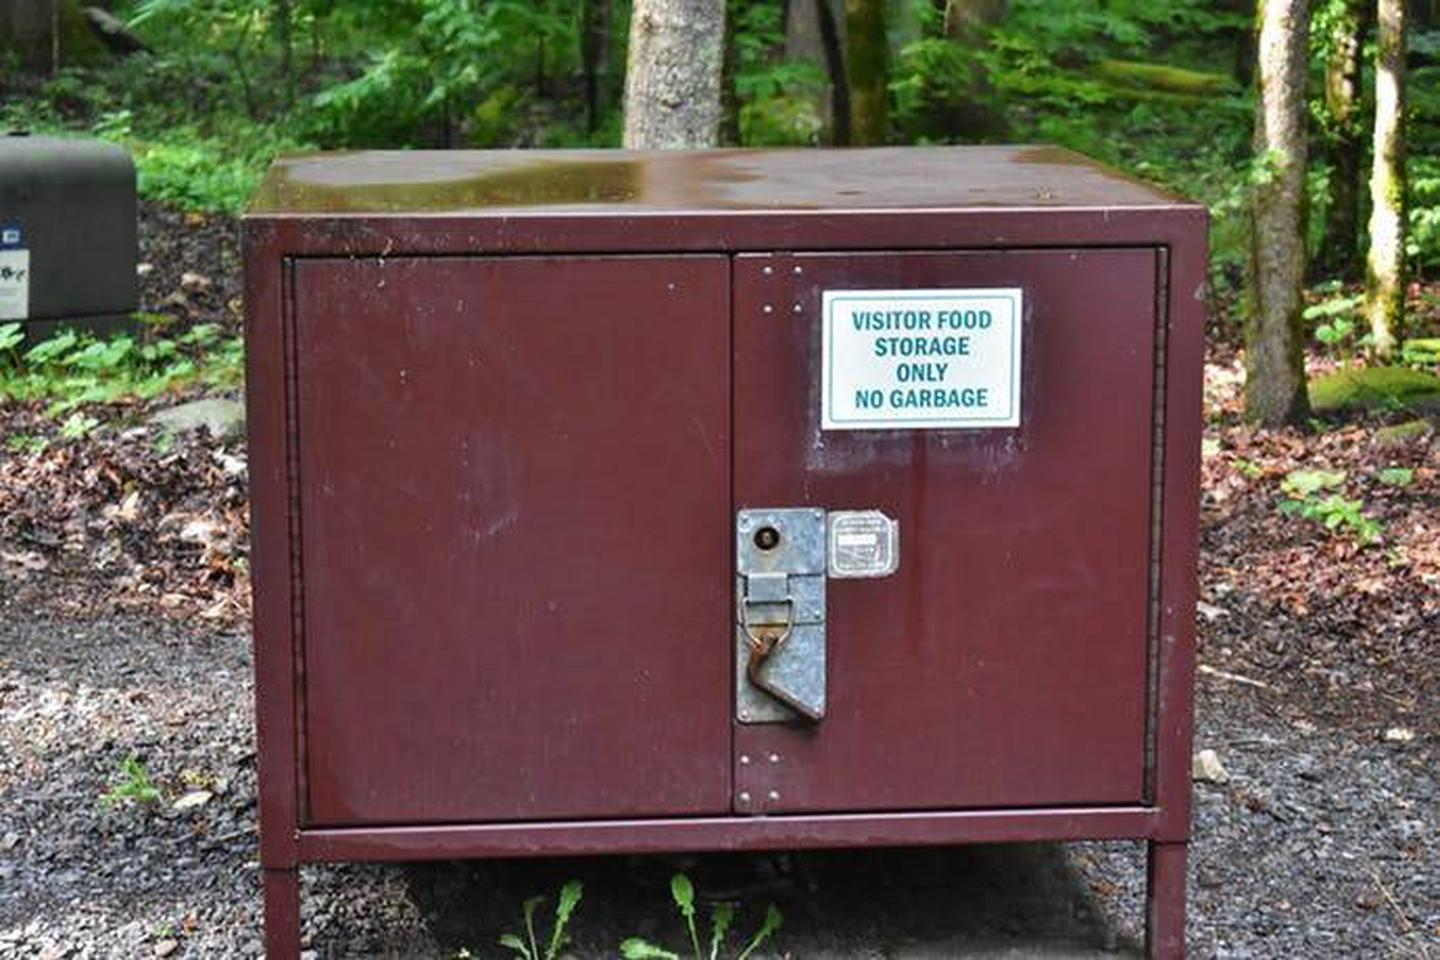 BearBox Big Creek is close to Harmon Den sanctuary so be sure to put your food in the storage box if you cannot secure it in your vehicle. This is mandatory for your and bear safety.